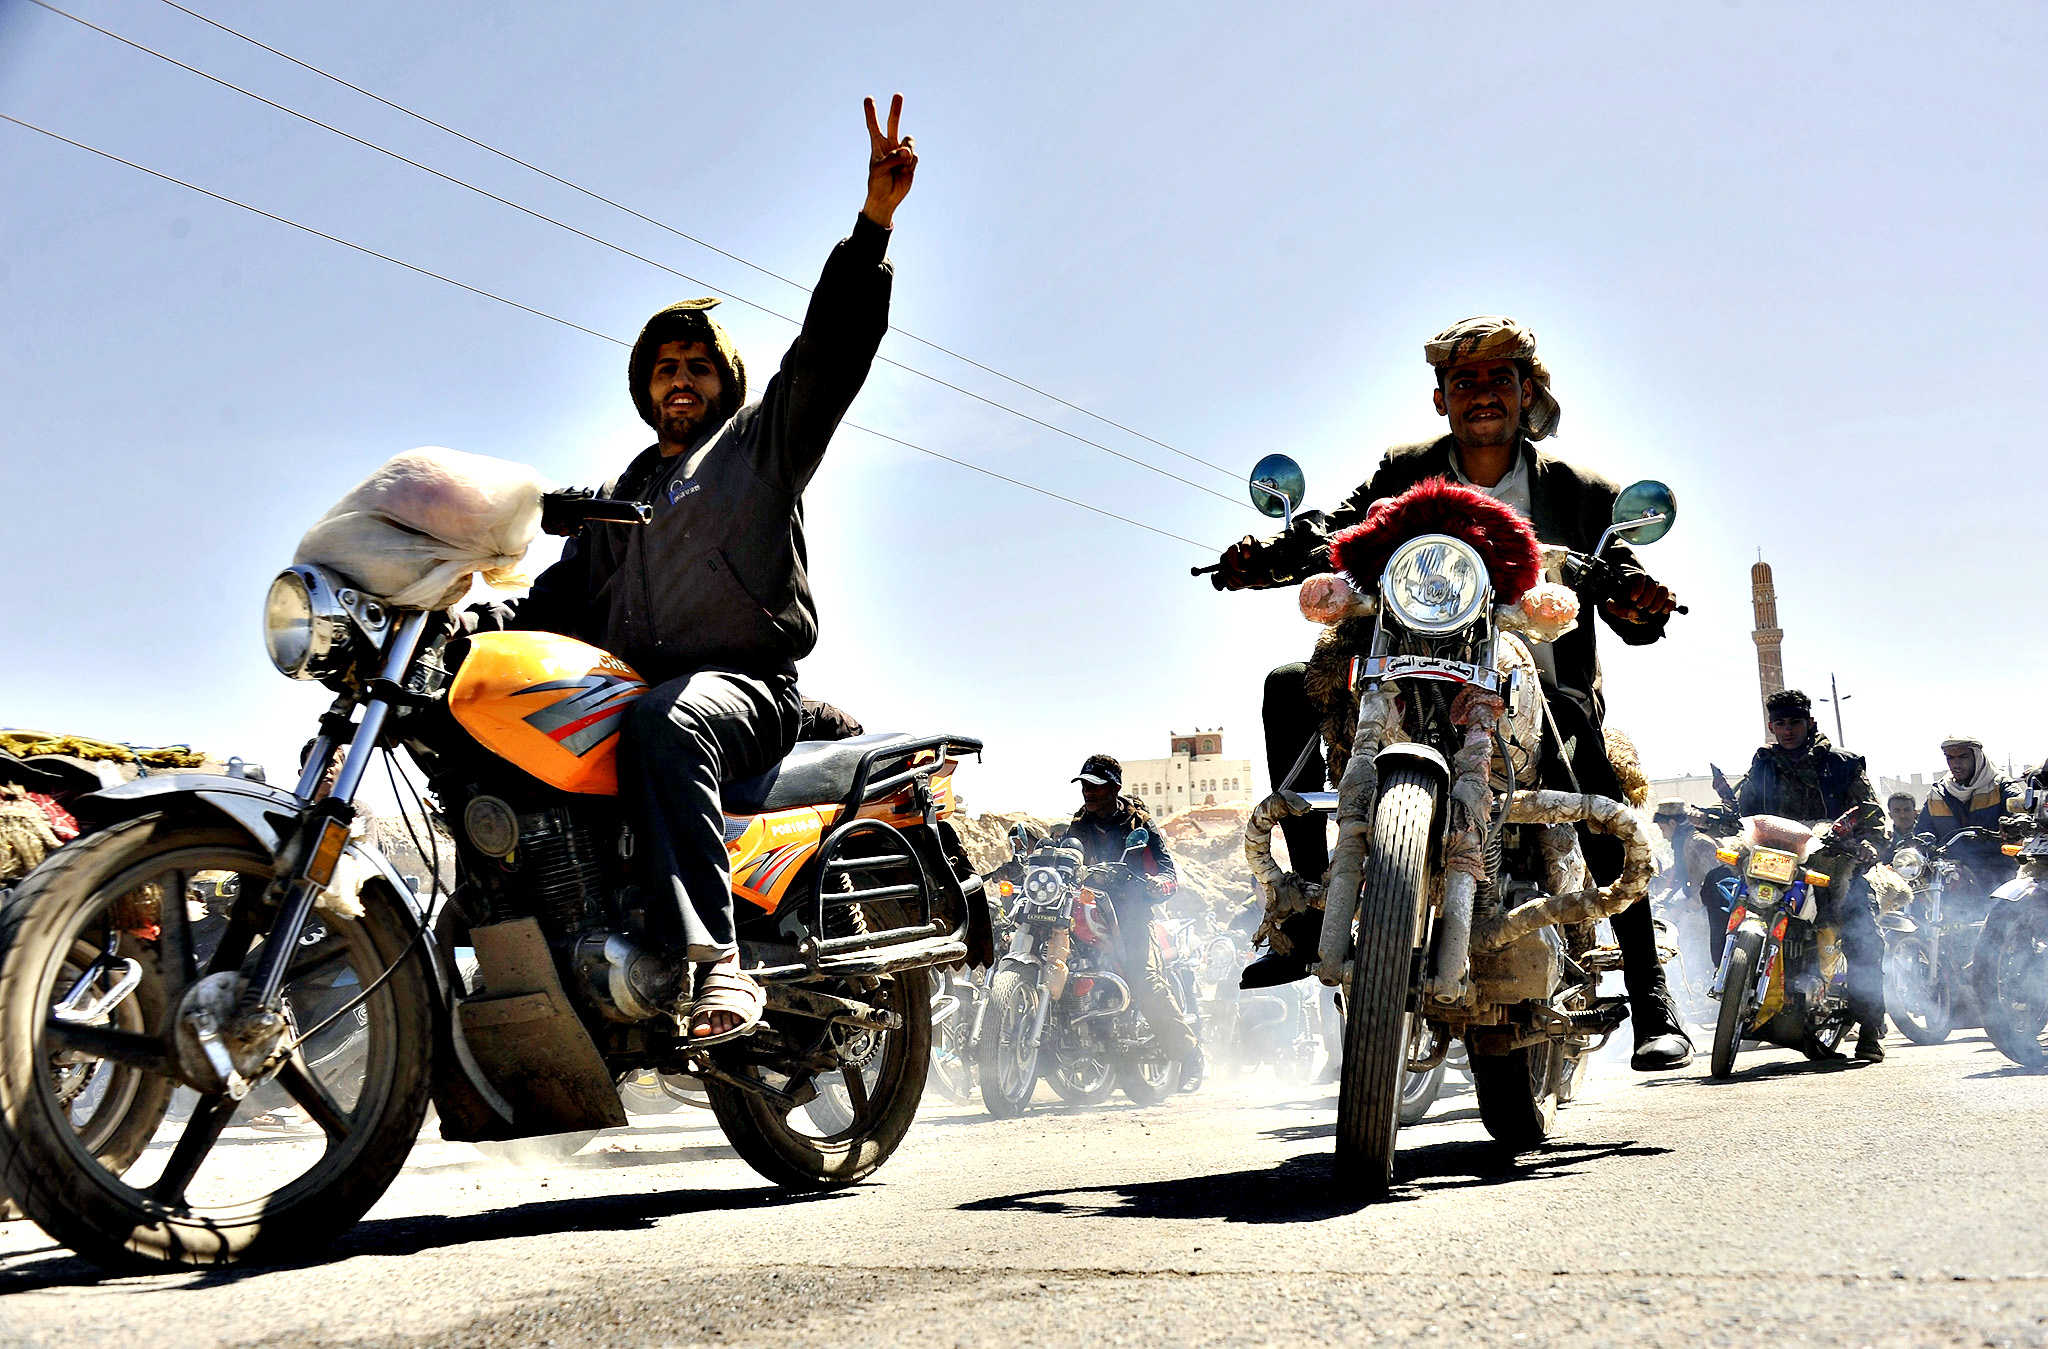 Motorcyclists take part in a protest against the Yemeni Government's decision to begin enforcing a long-standing motorbike ban, Sana a, Yemen, 23 October 2014. Reports state that amid increased insecurity resulting from a Houthi take over of the Yemeni capital 21 September and a string of attacks and assasinations carried out on senior army and security officials primarily utilising motorcylces as a form of transport the Yemeni Government has taken the decision to resume enforcing a ban on motorbikes.